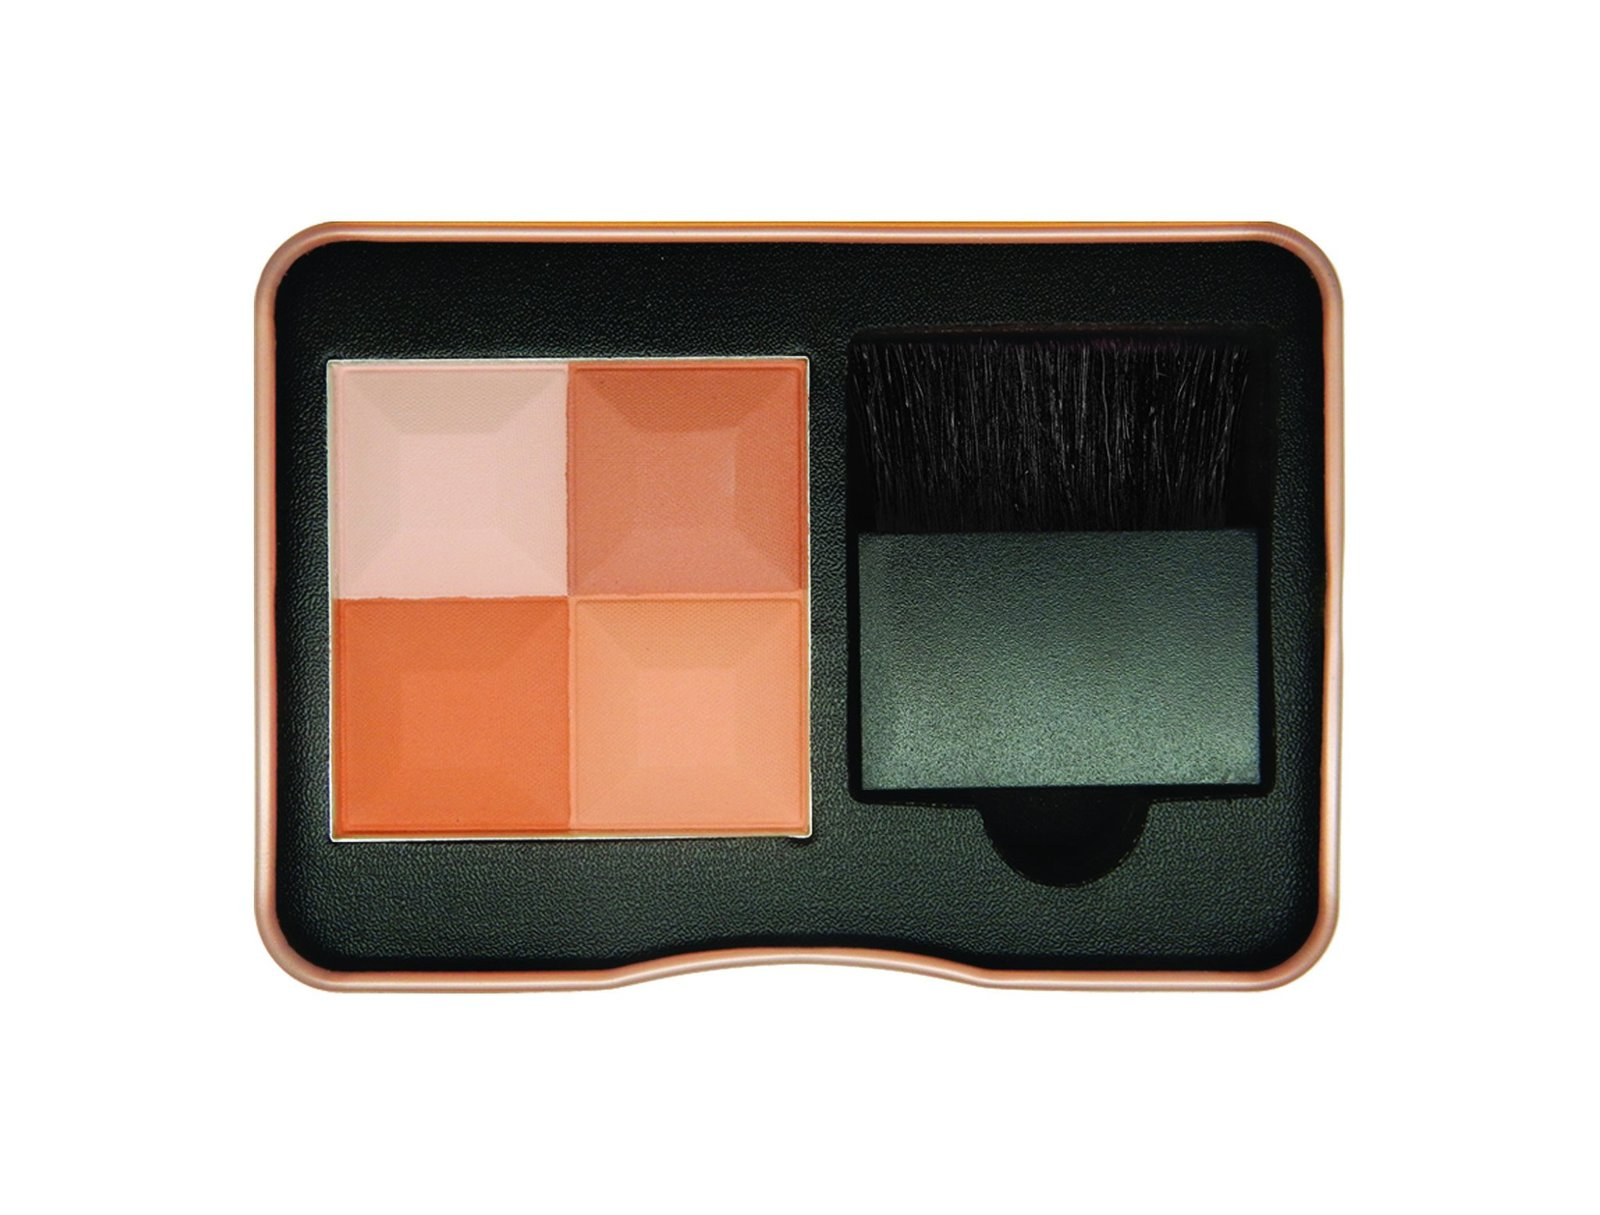 W7 Blush with Me Colour Cube (Honeymoon) image